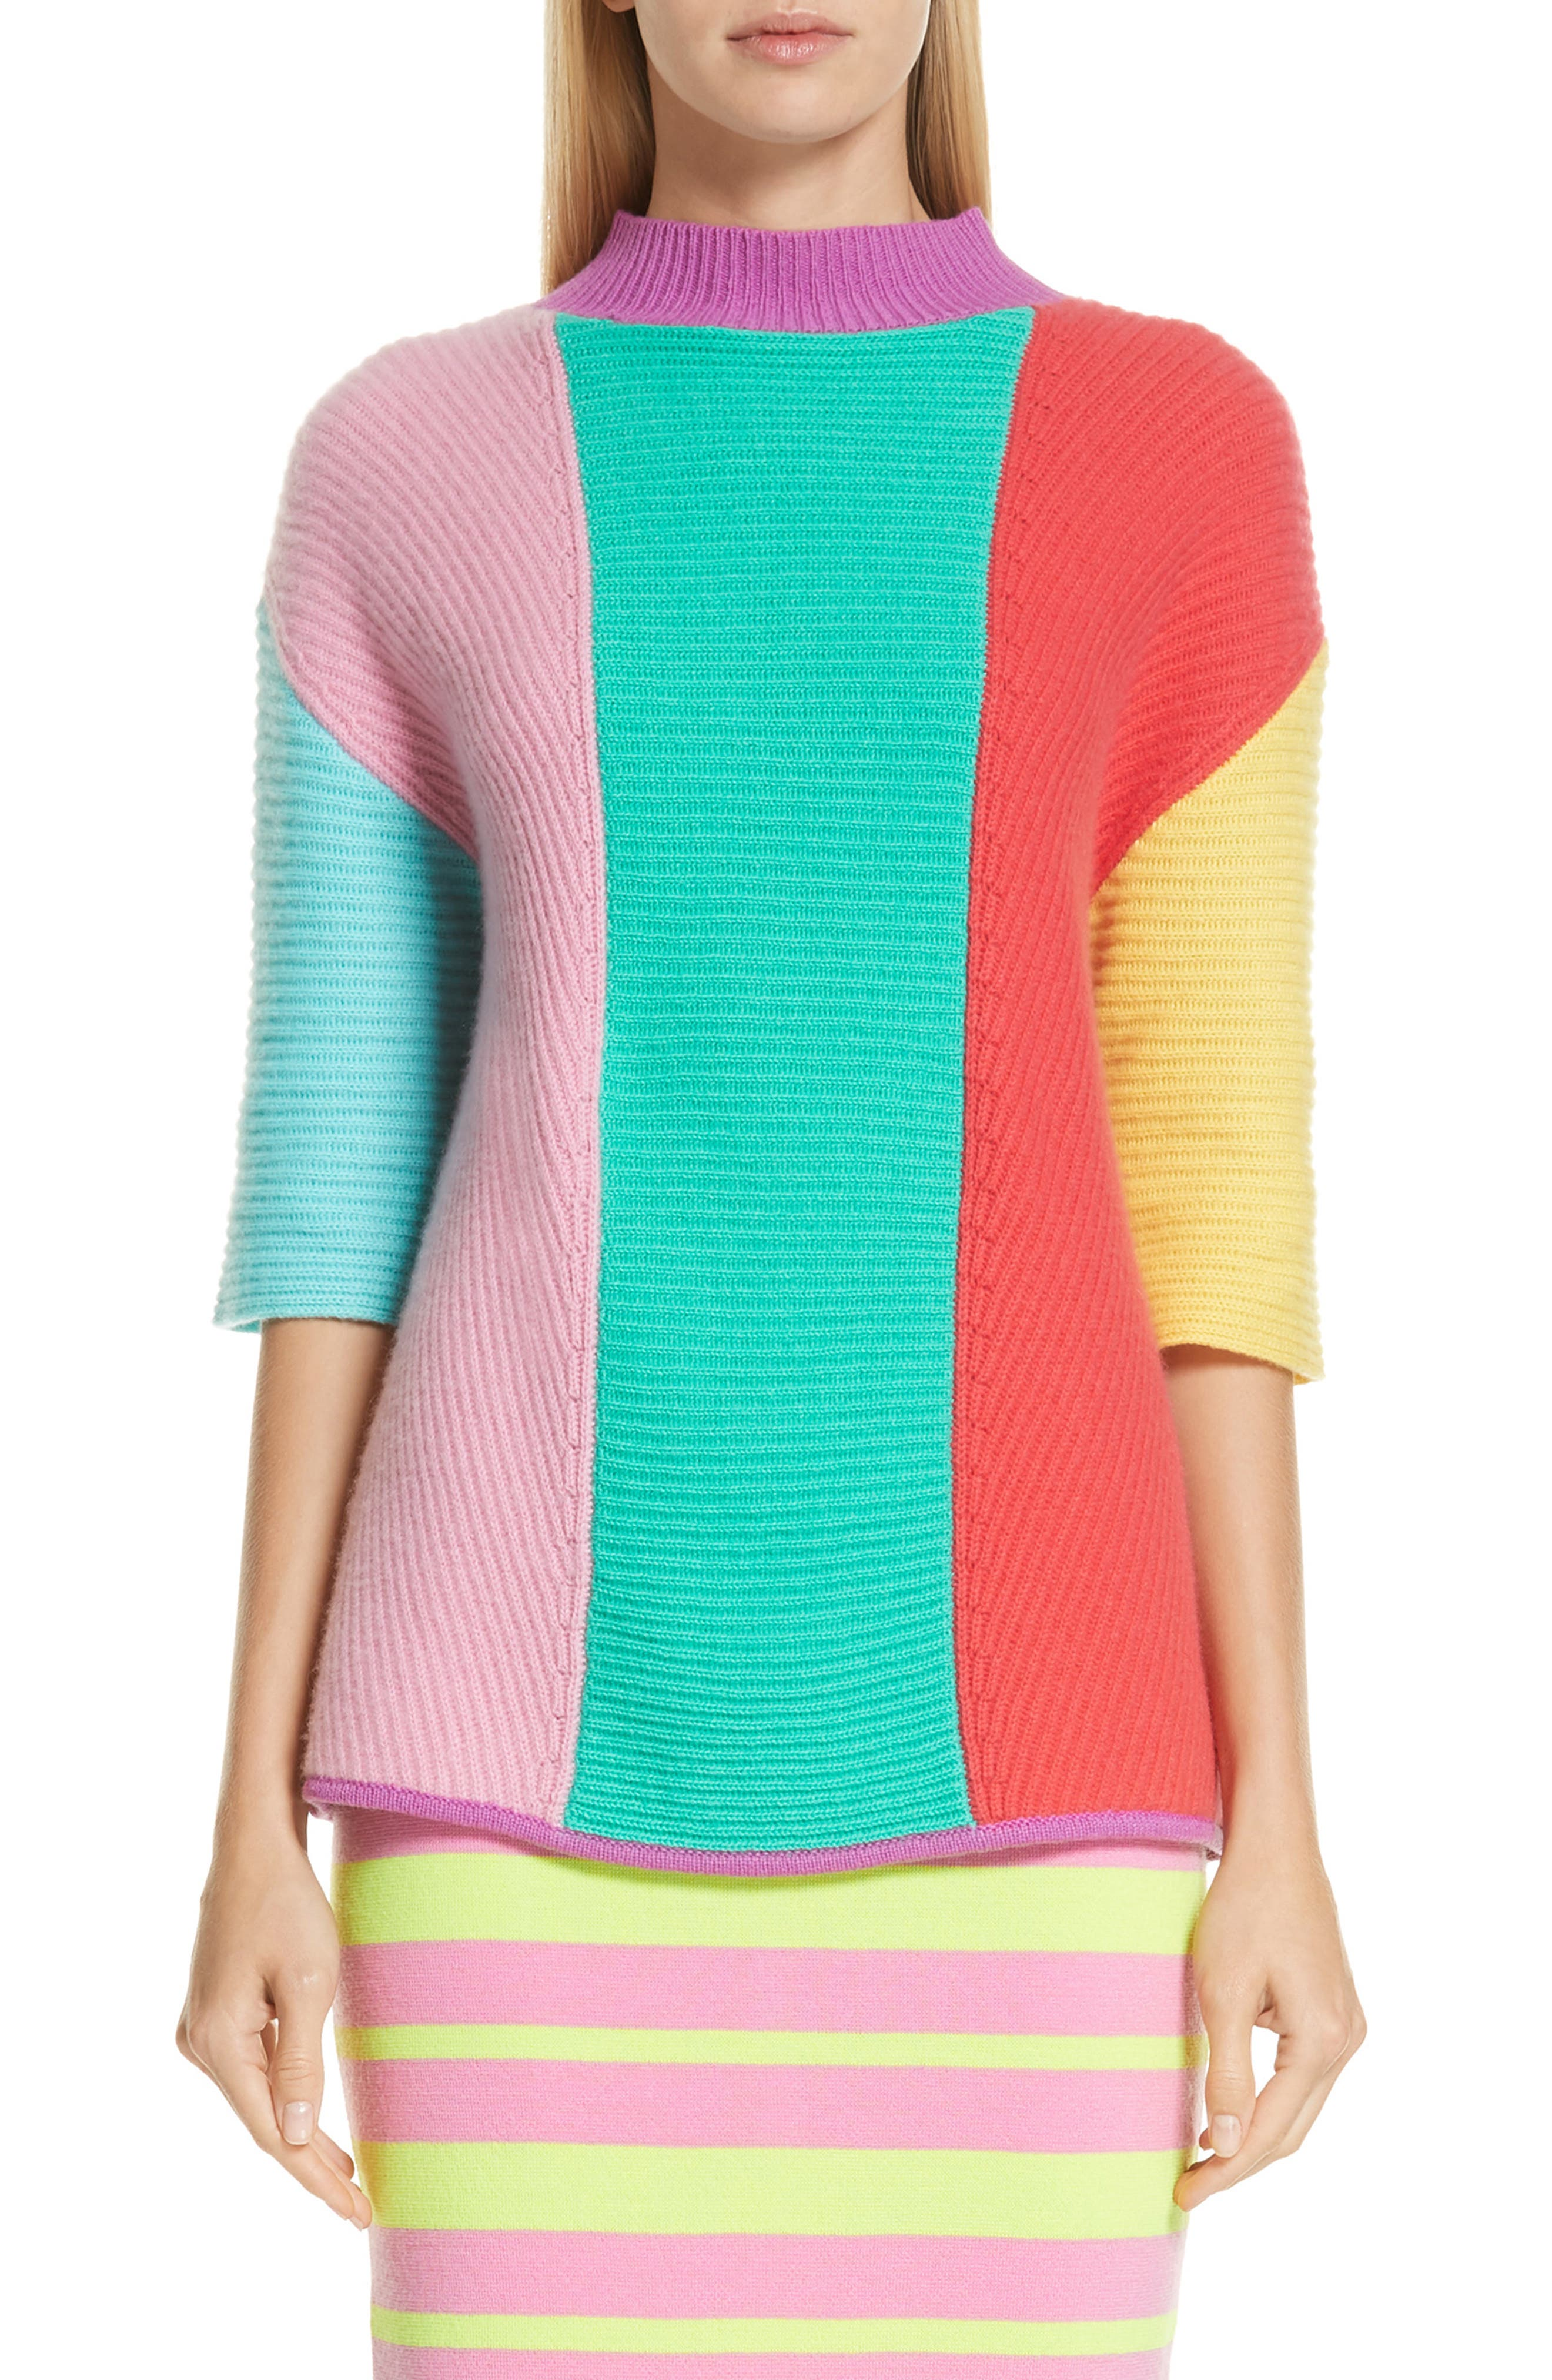 VICTOR GLEMAUD Cashmere Colorblock Funnelneck Sweater in Multi